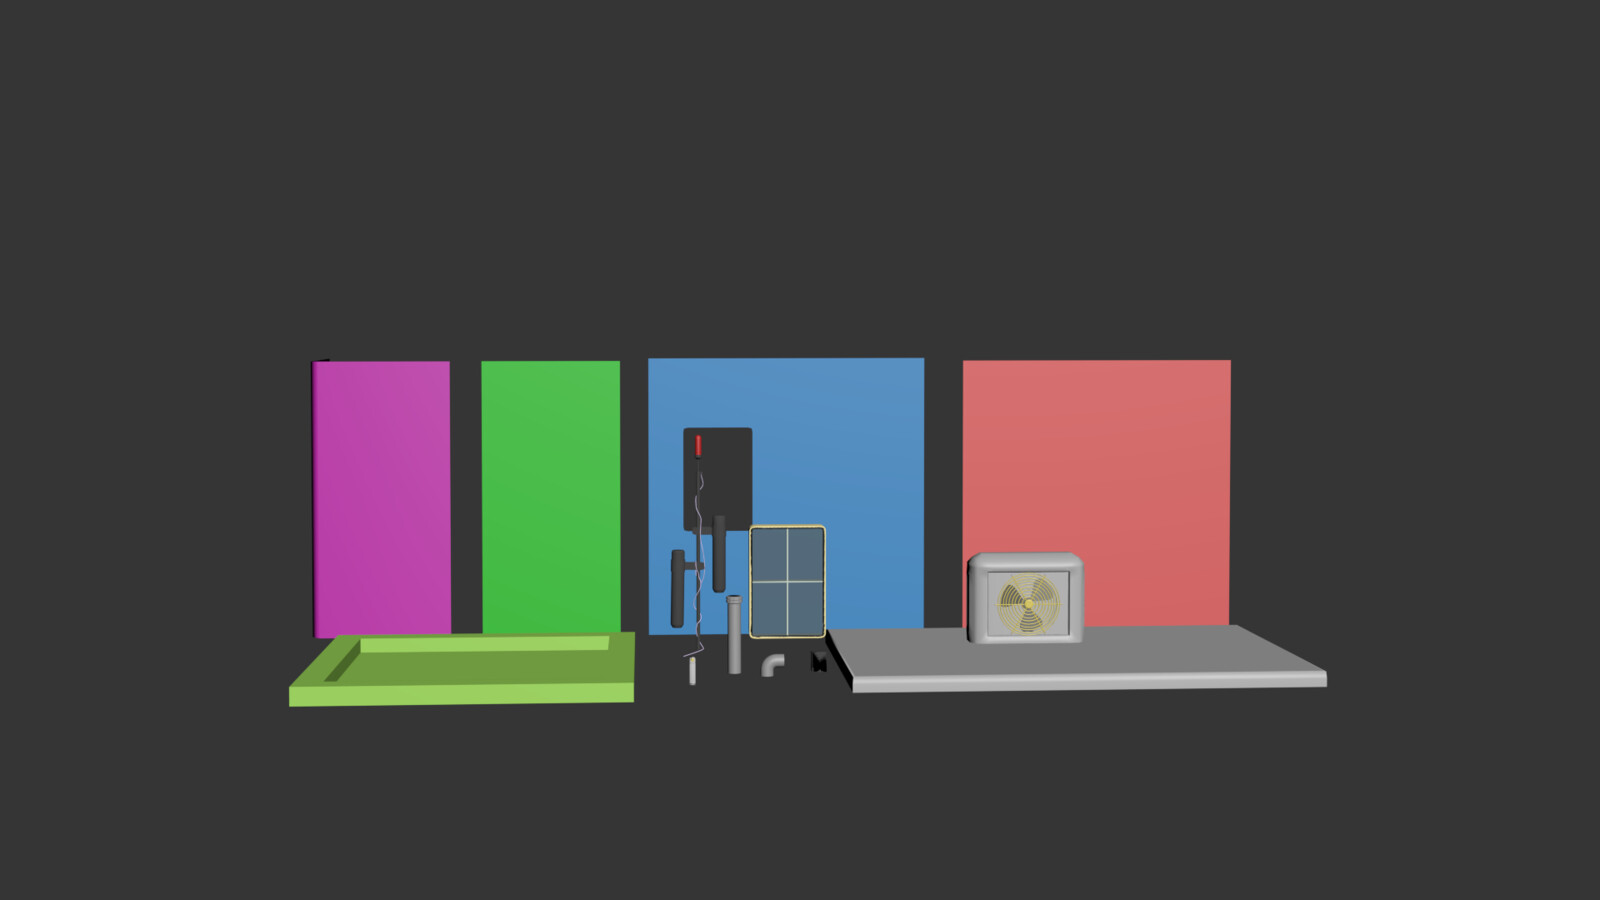 Modular breakdown of bunker. Wiring, etc were created using a spline bp in Unreal rather than using the 3d s models for more control. In the end I merged the walls in ue4  to have seamless vertex painting between the modules.